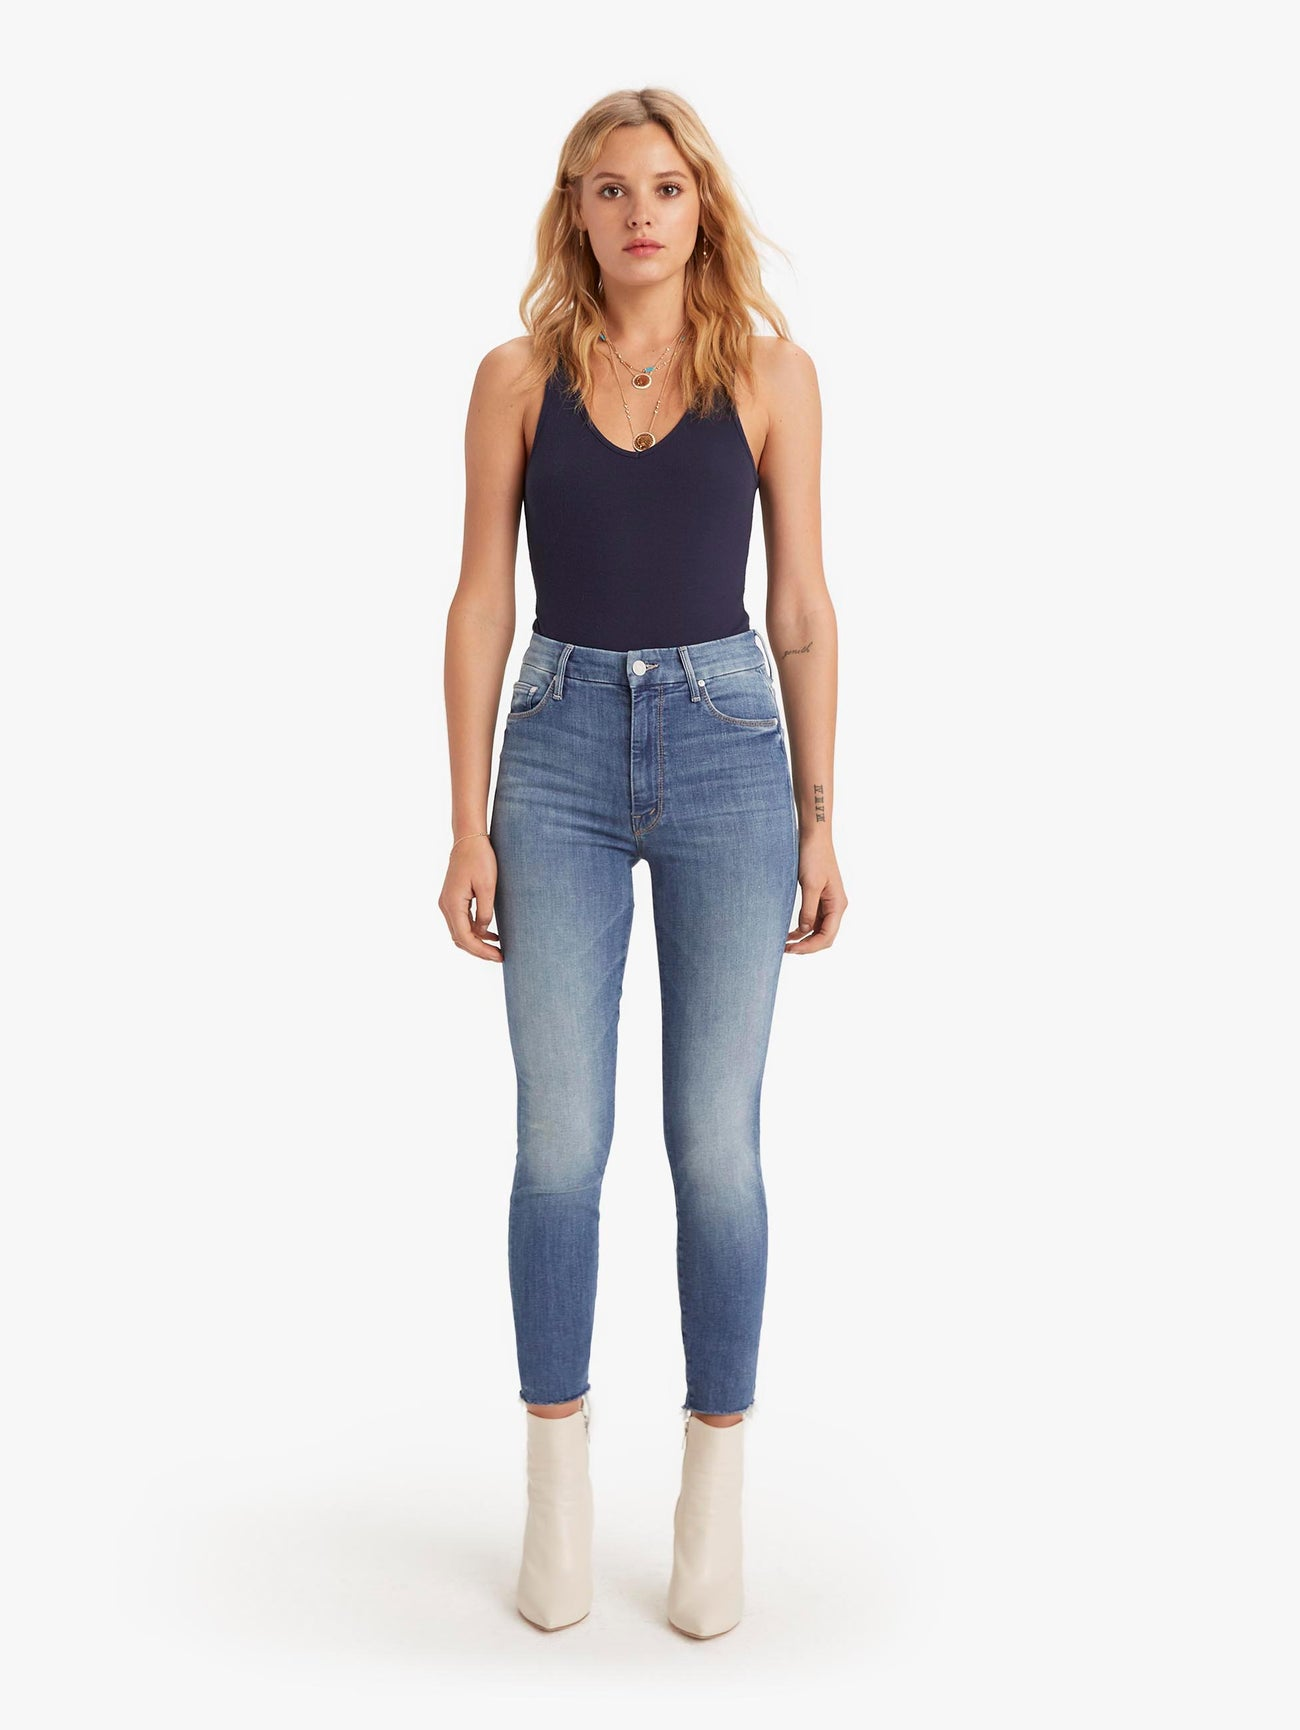 High Waisted Looker Ankle Fray - One Smart Cookie